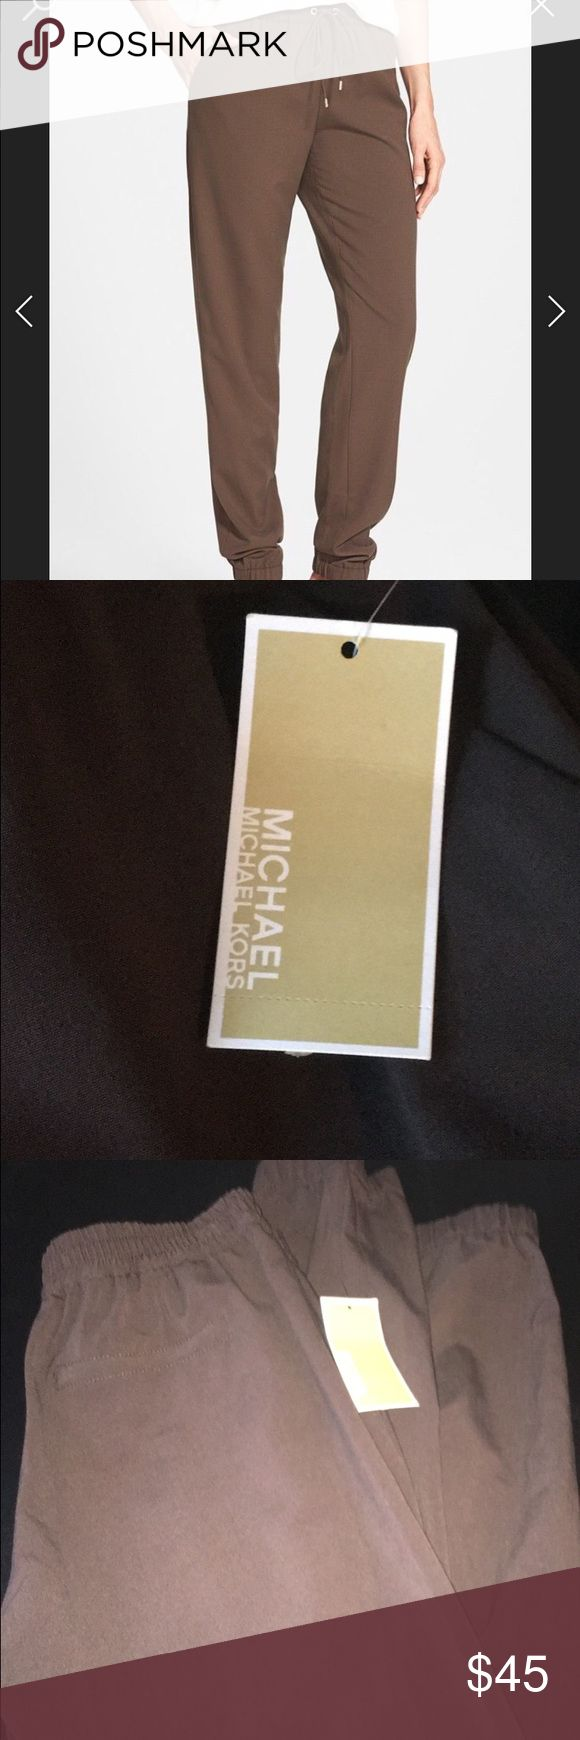 NEW WITH TAGS. Micheal kors brown joggers NEW WITH TAGS brown Micheal kors joggers. Can be dressed up or down KORS Michael Kors Pants Track Pants & Joggers